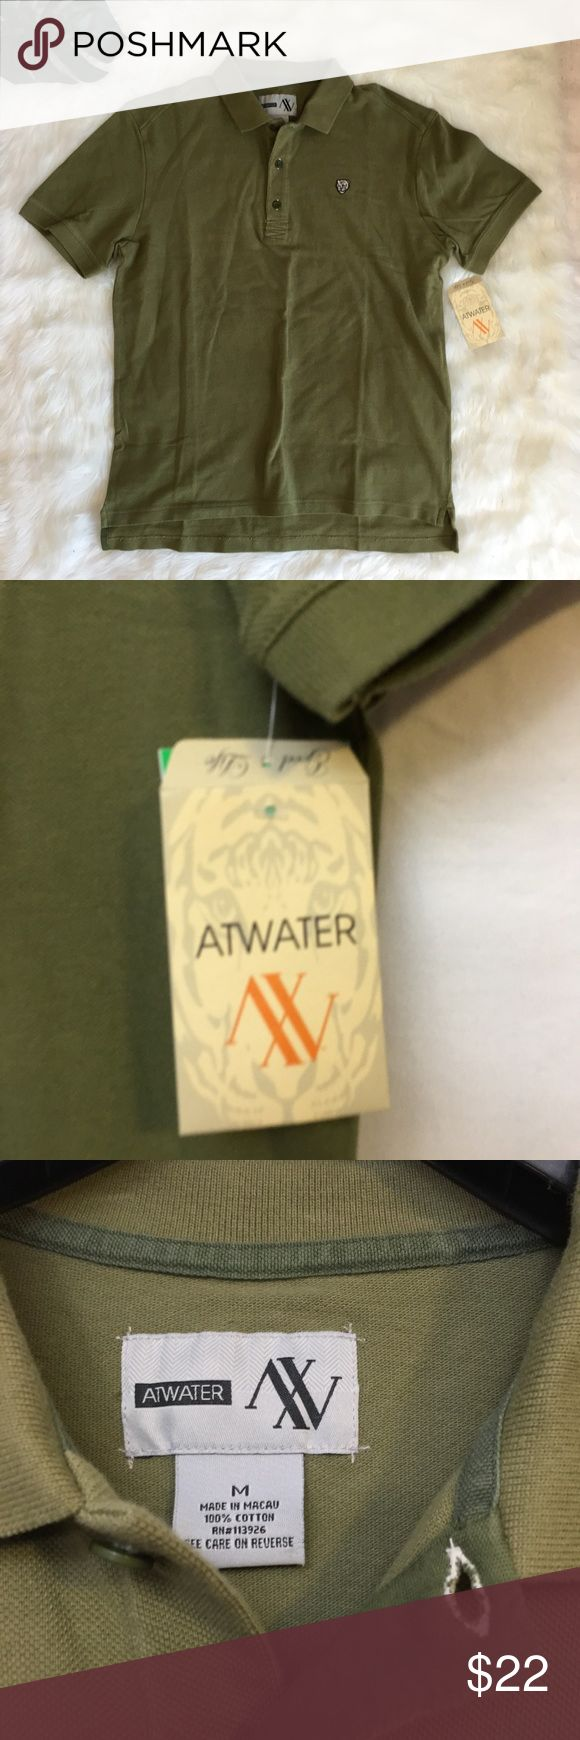 "AtWater Army Green Cotton Polo Shirt Tiger Logo AtWater Mens Army Green Cotton Polo Shirt Tiger Logo Skater Style Medium NWT 100% Cotton  LENGTH 28"" SLEEVES 8"" UNDERARM TO UNDERARM 21"" Brand new tags.   Quick shipping! WE SHIP EITHER THE SAME BUSINESS DAY OR NEXT. ORDERS ON WEEKENDS ARE IN MAIL BY MONDAY MORNING. AtWater Shirts Polos"